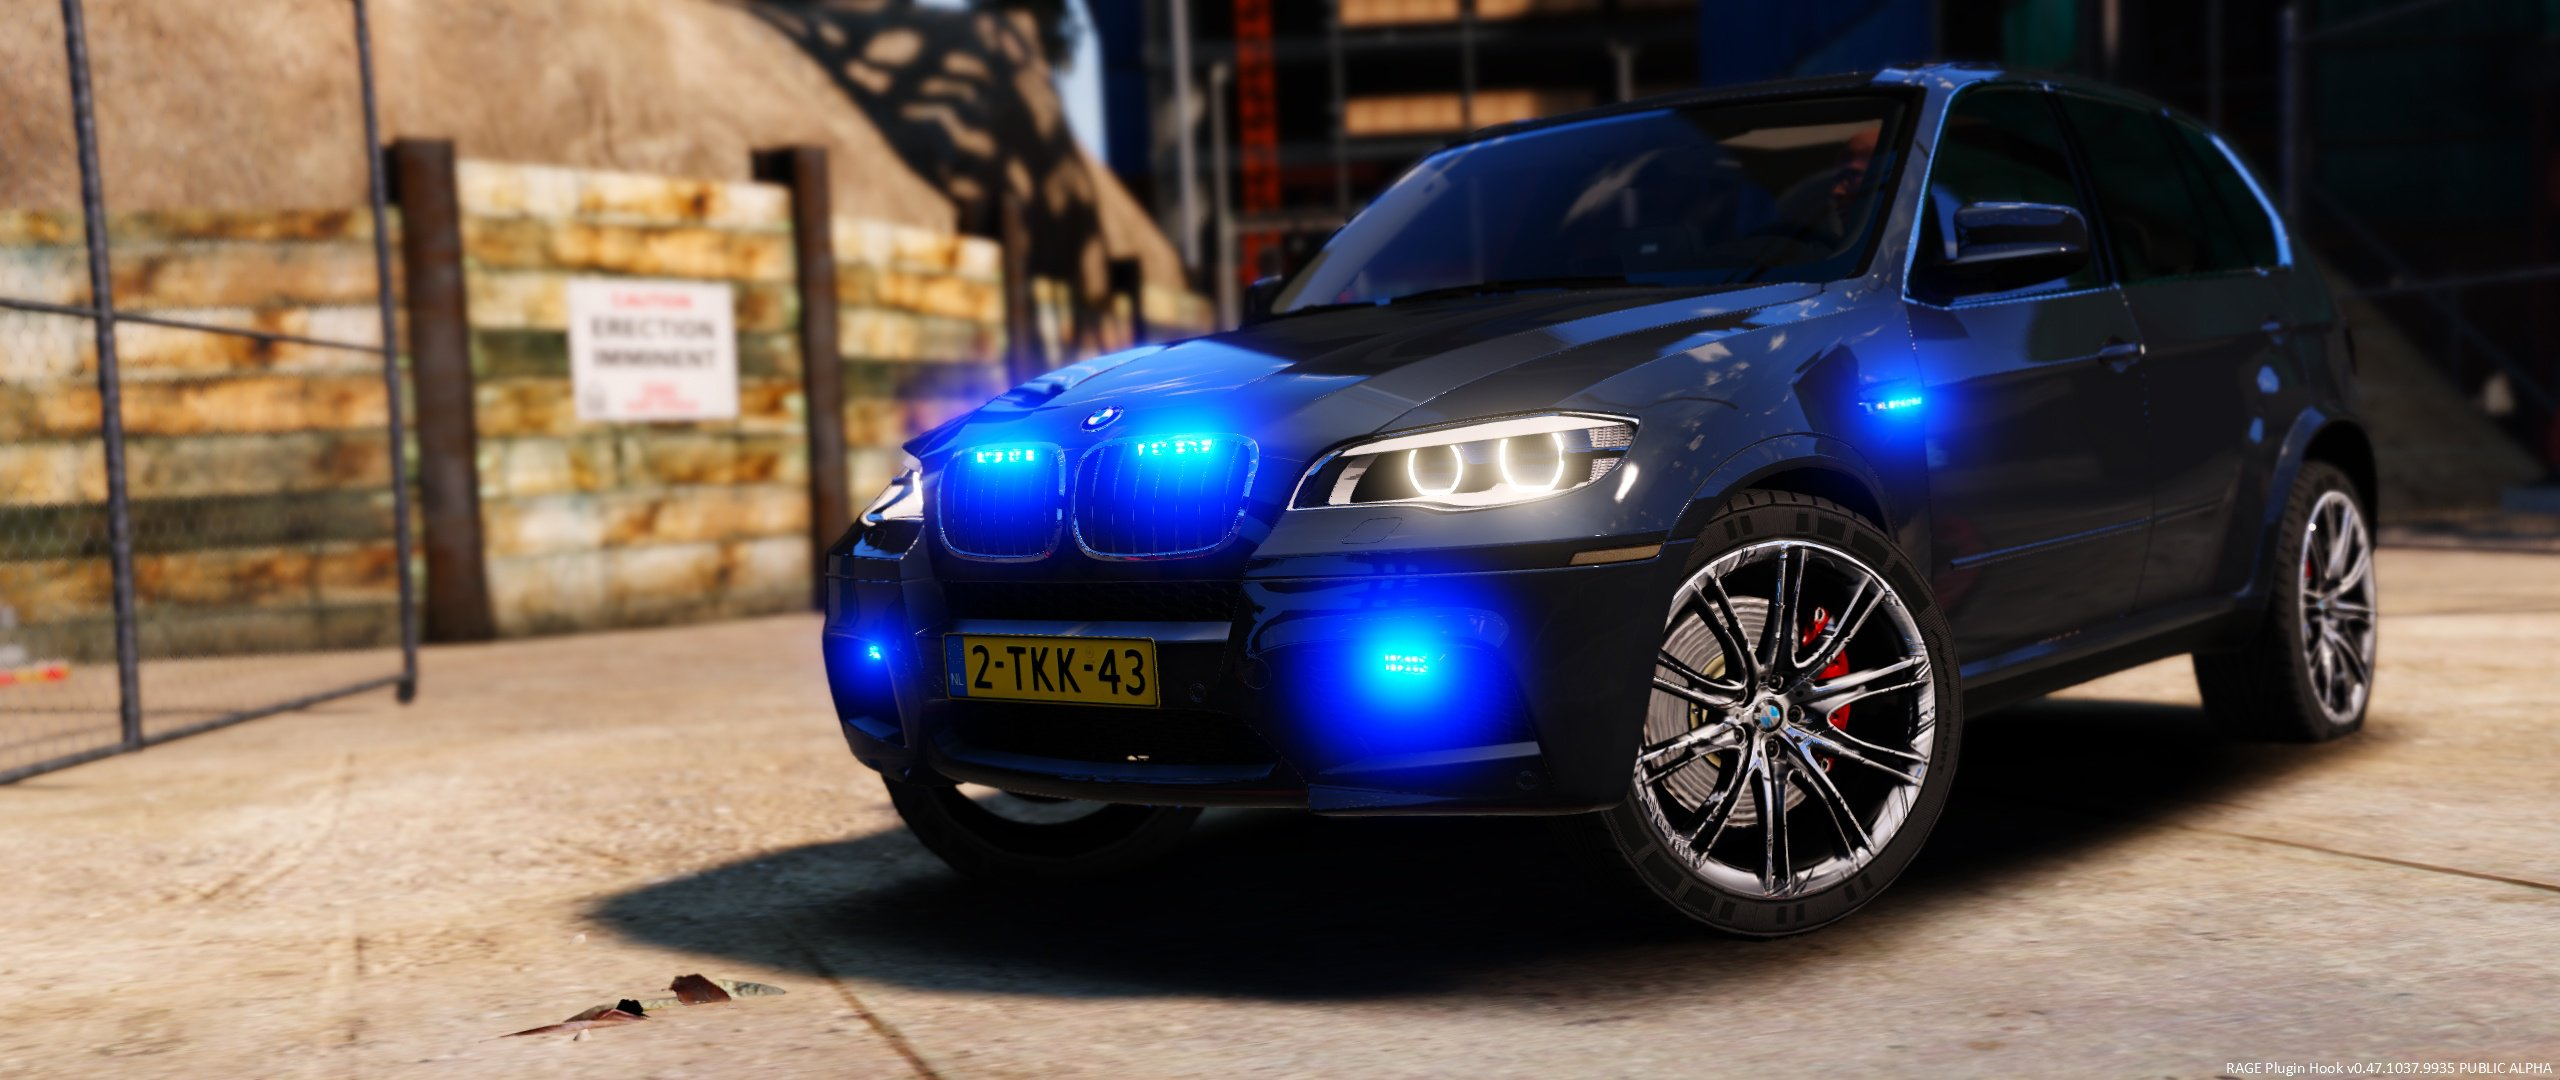 BMW X5 Unmarked Dutch Police - GTA5